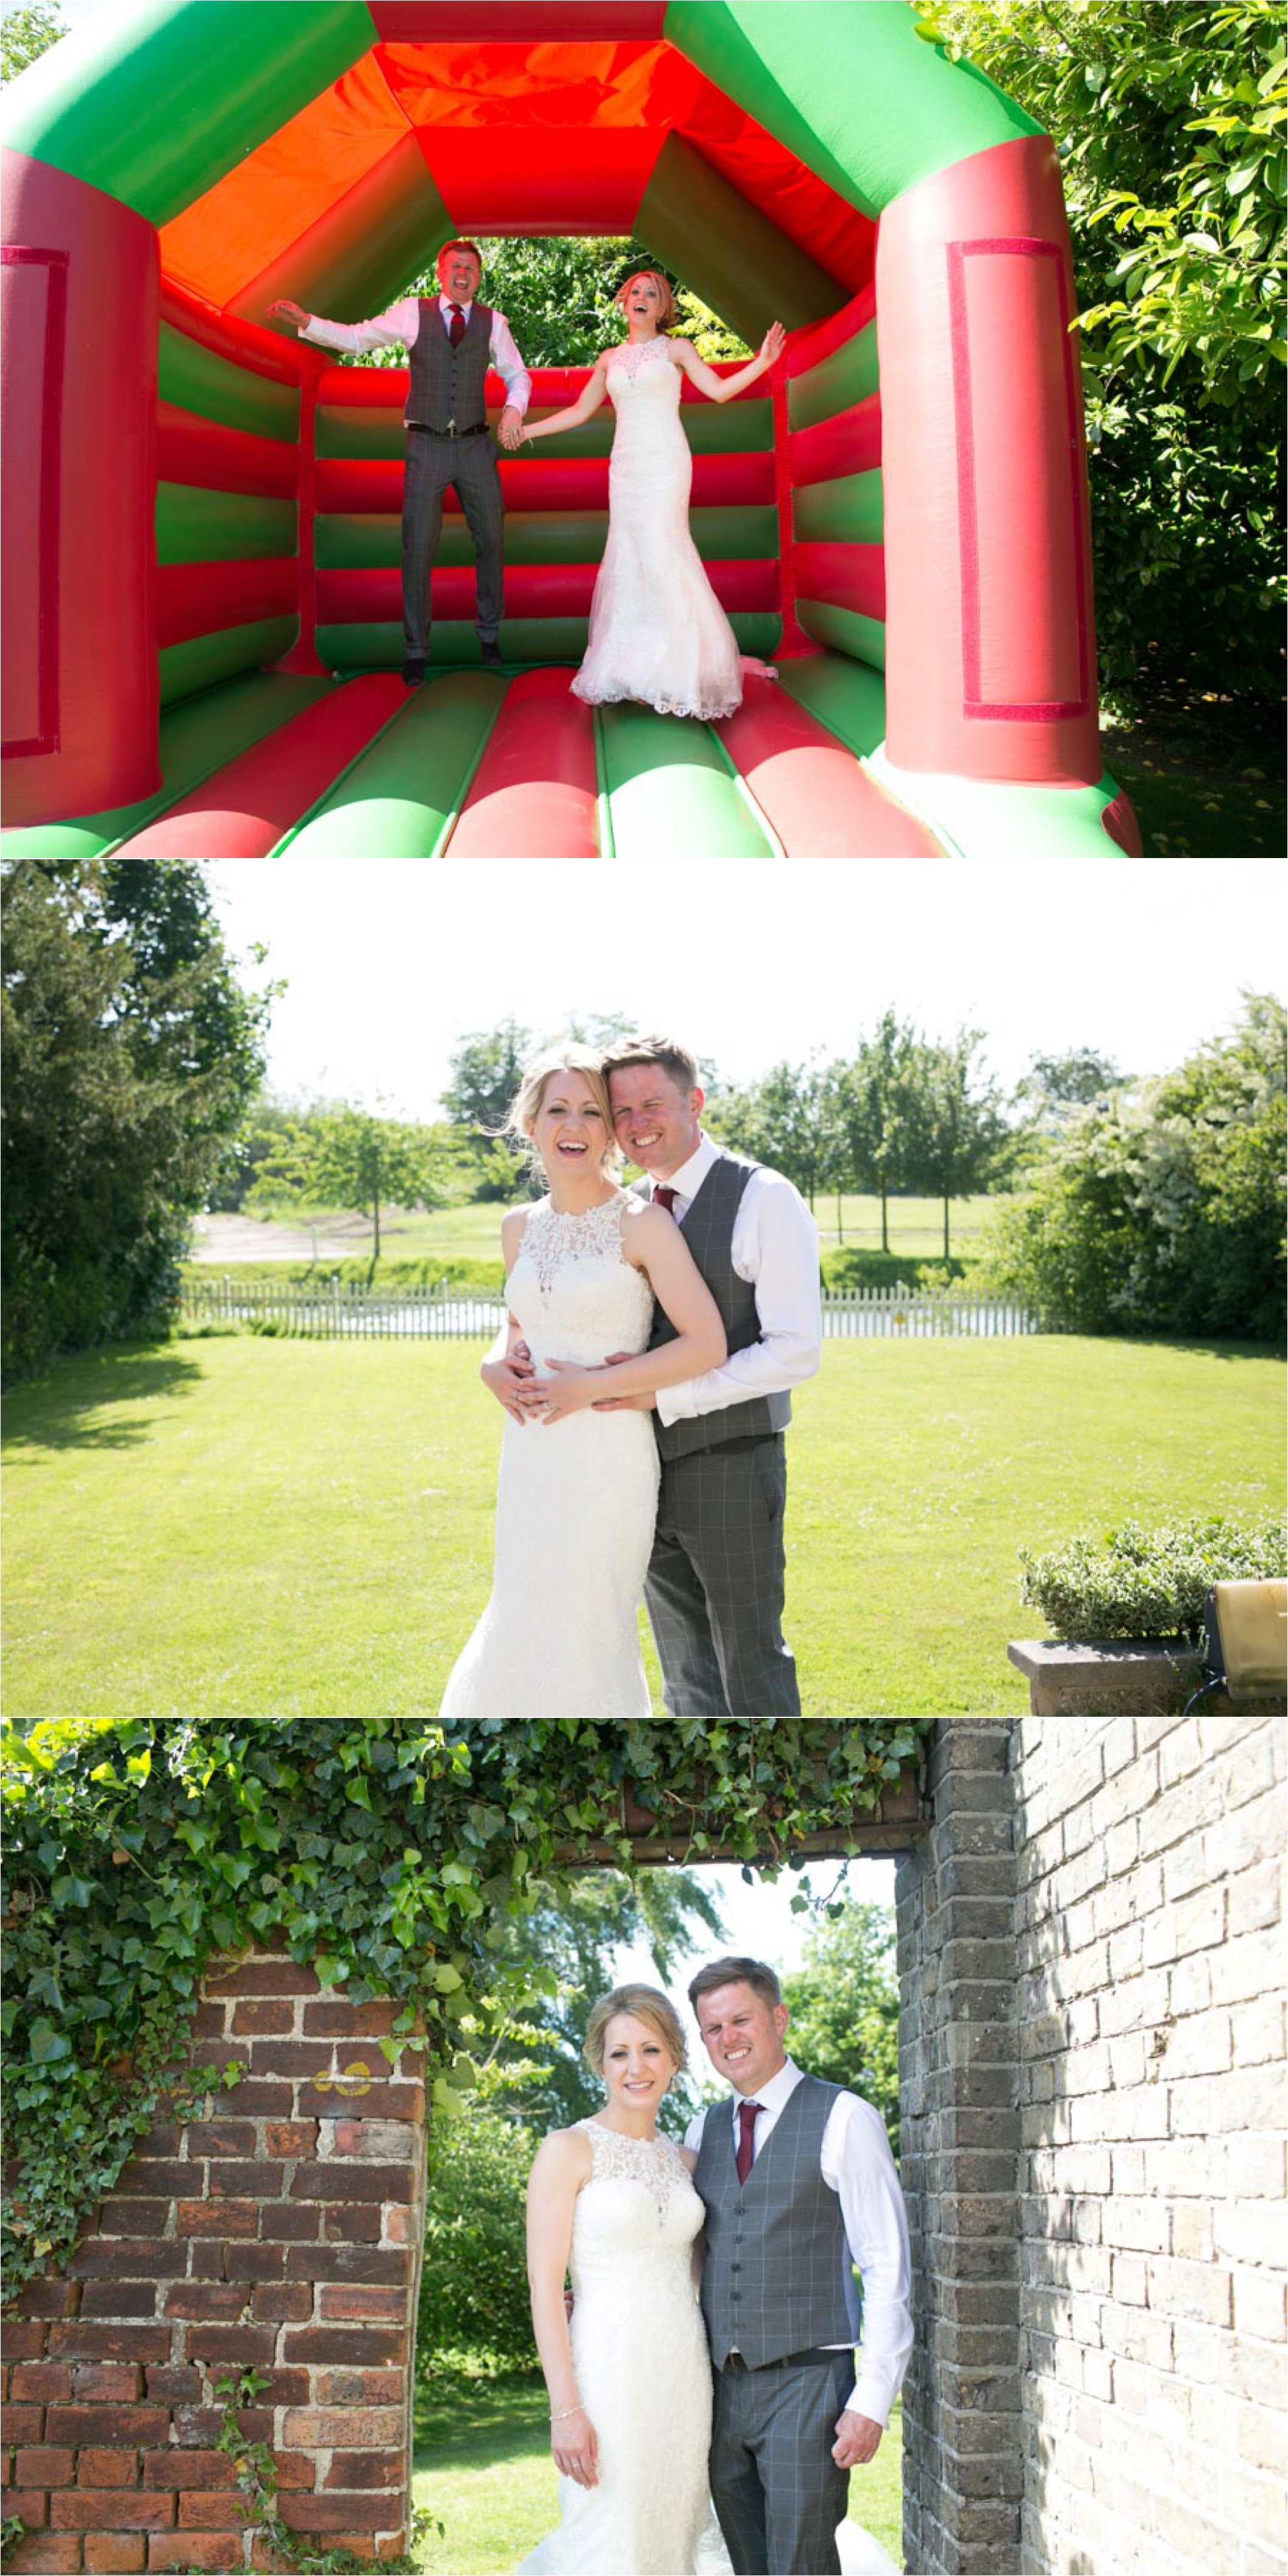 bouncy castle fun at reid rooms wedding, alternative and fun wedding photography